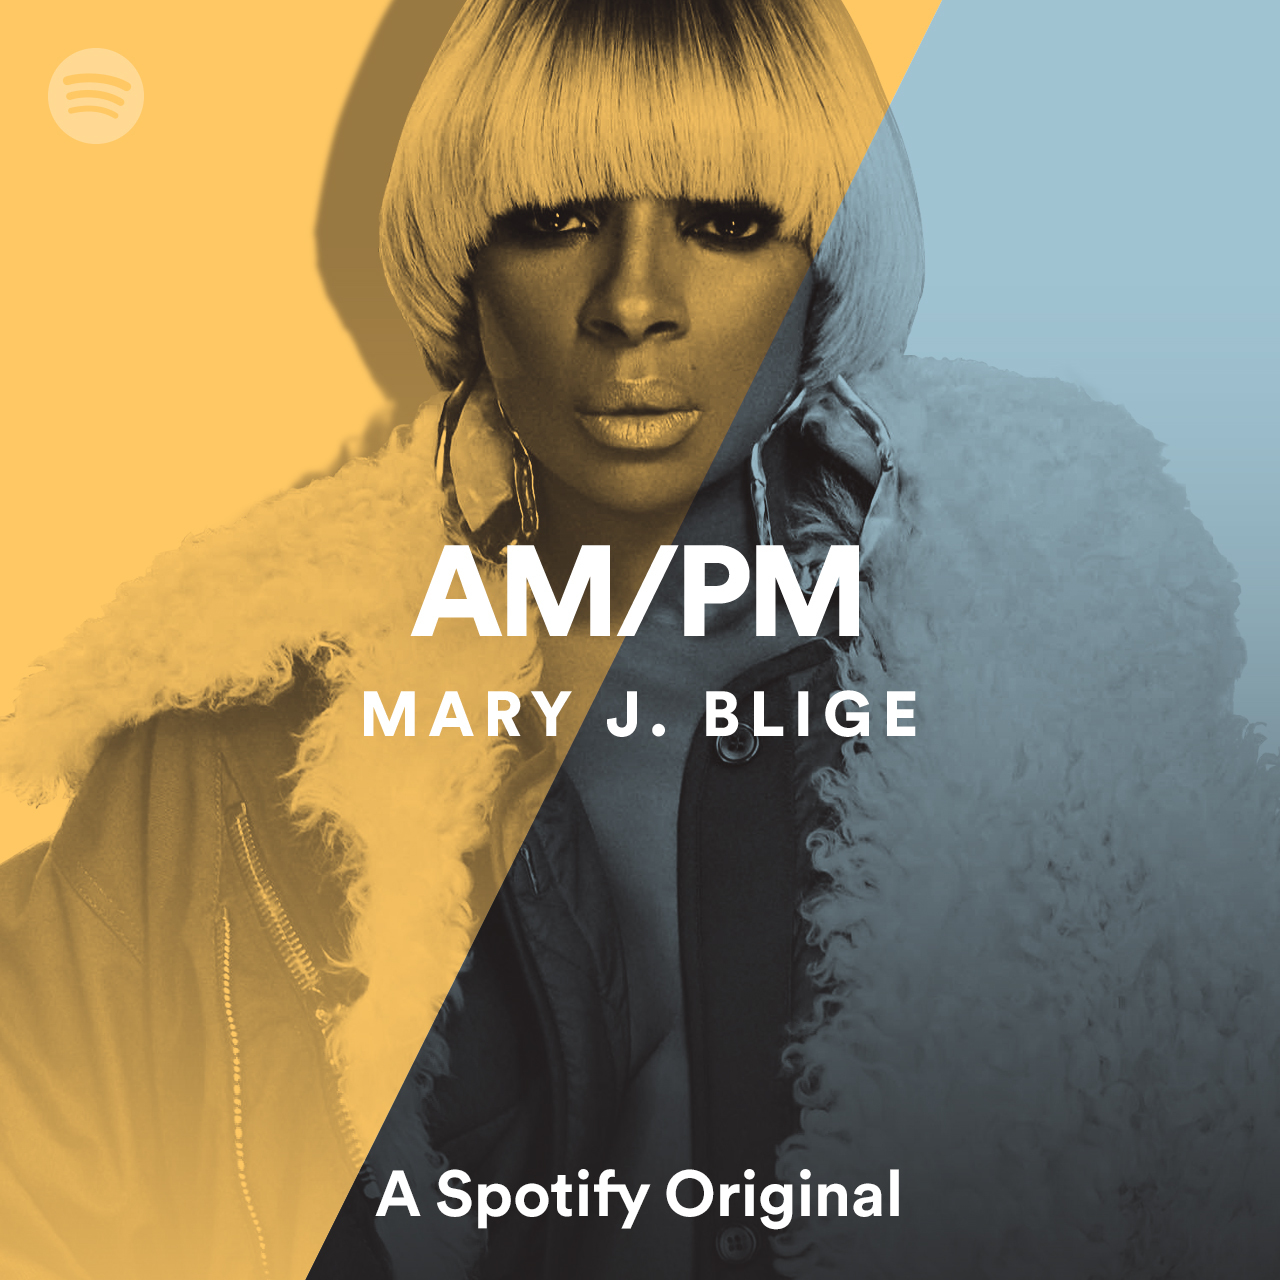 Mary J. Blige Talks New Album, Influences and Drops Playlist on AM/PM [Watch]